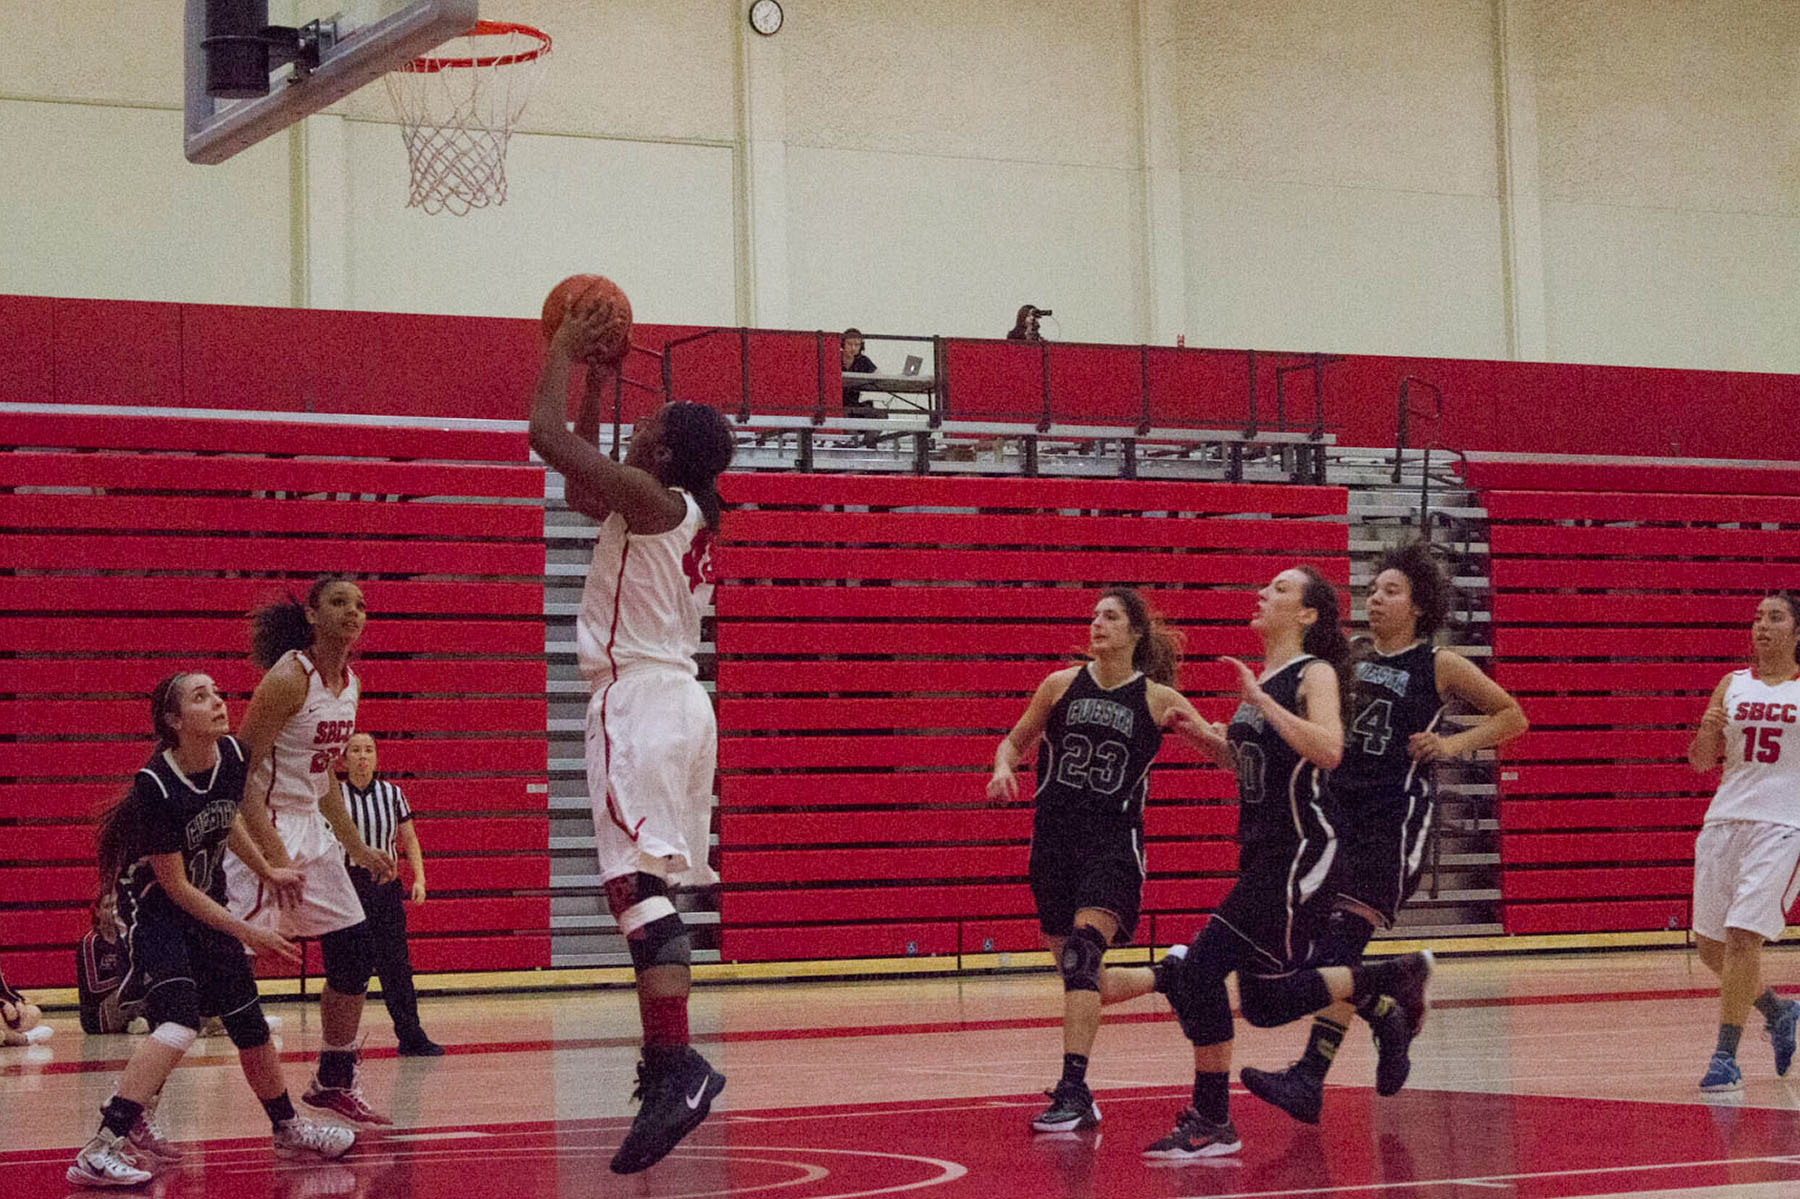 City College Vaquero Jada Clark (No. 44) tries to get her team back in the lead during the second quarter against the Cuesta City College Cougars held on Saturday, Feb. 4, 2017, in the Sports Pavilion. The Vaqueros took the win with a final score of 82 to 73.